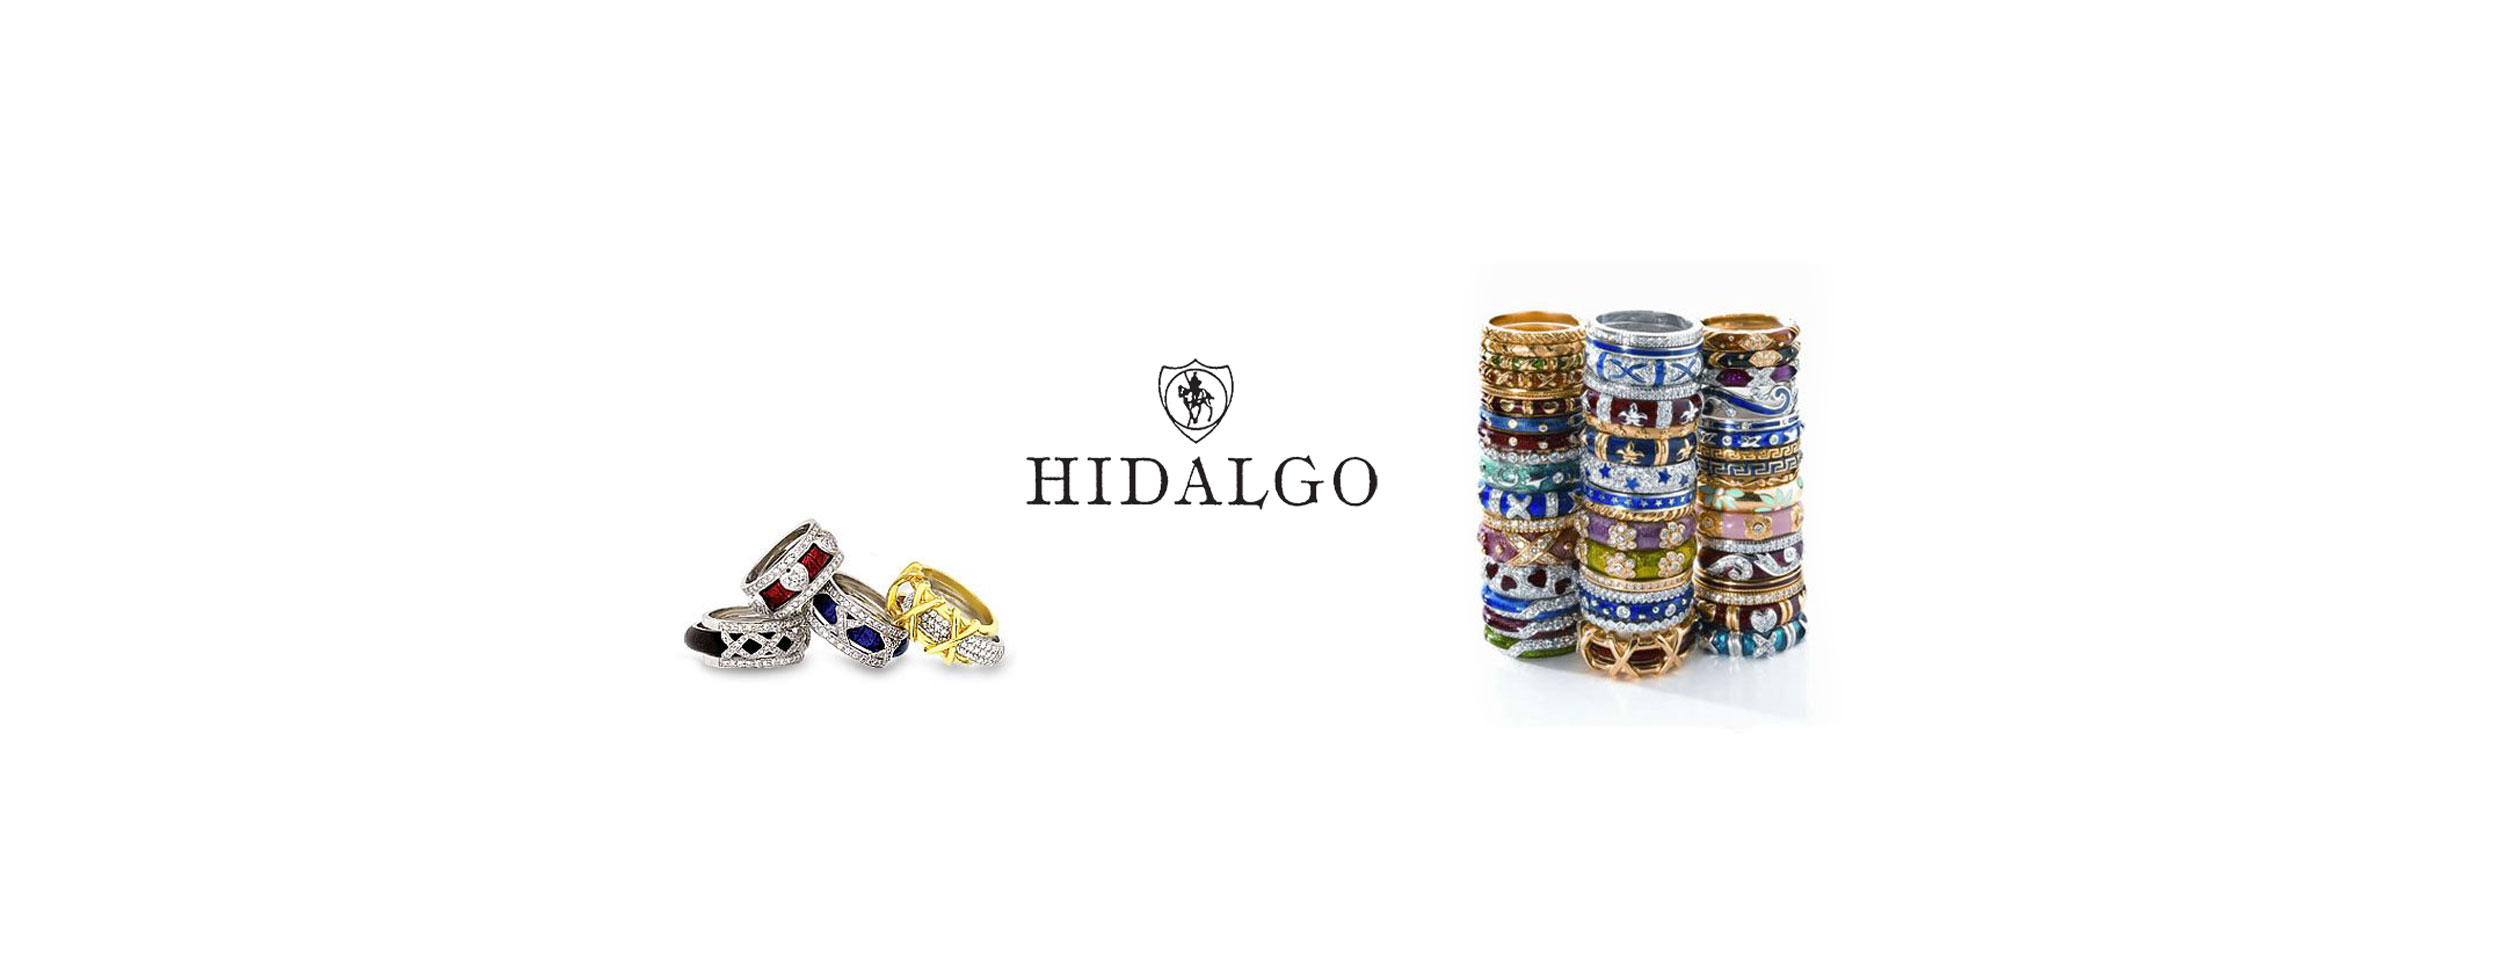 hidalgo rings